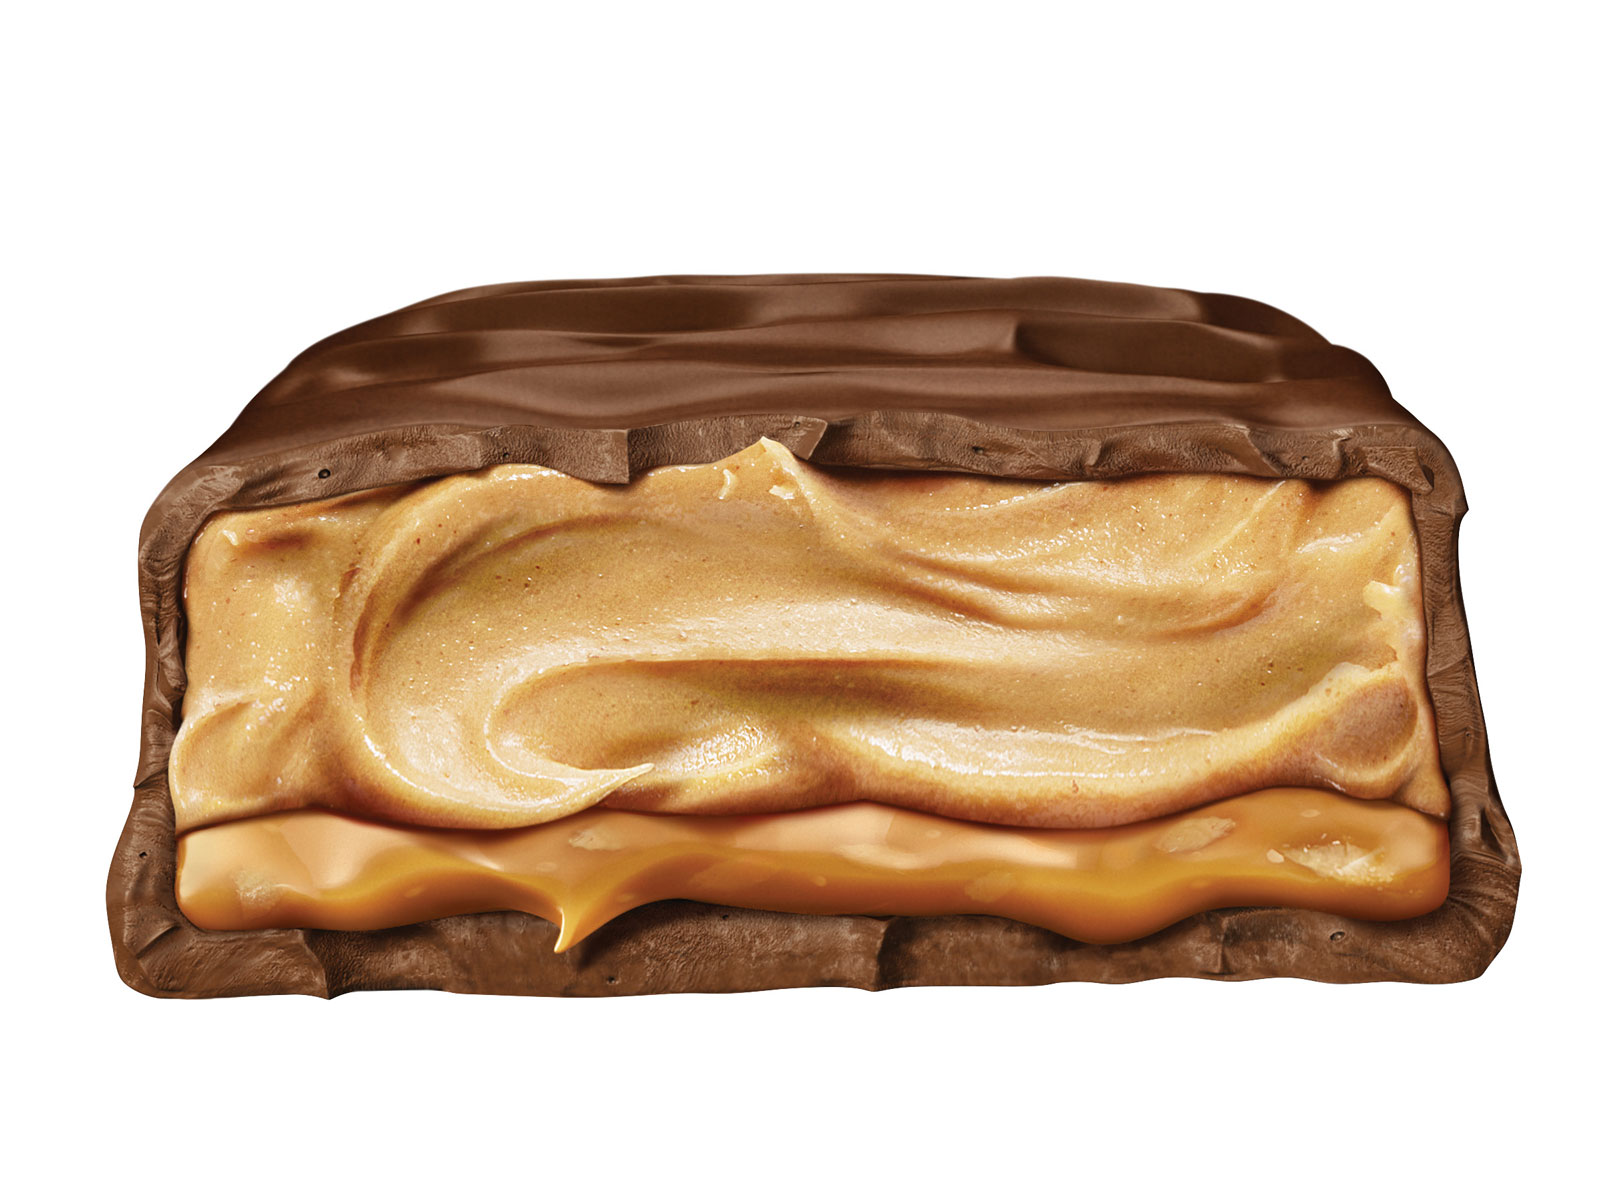 Creamy Peanut Butter Snickers